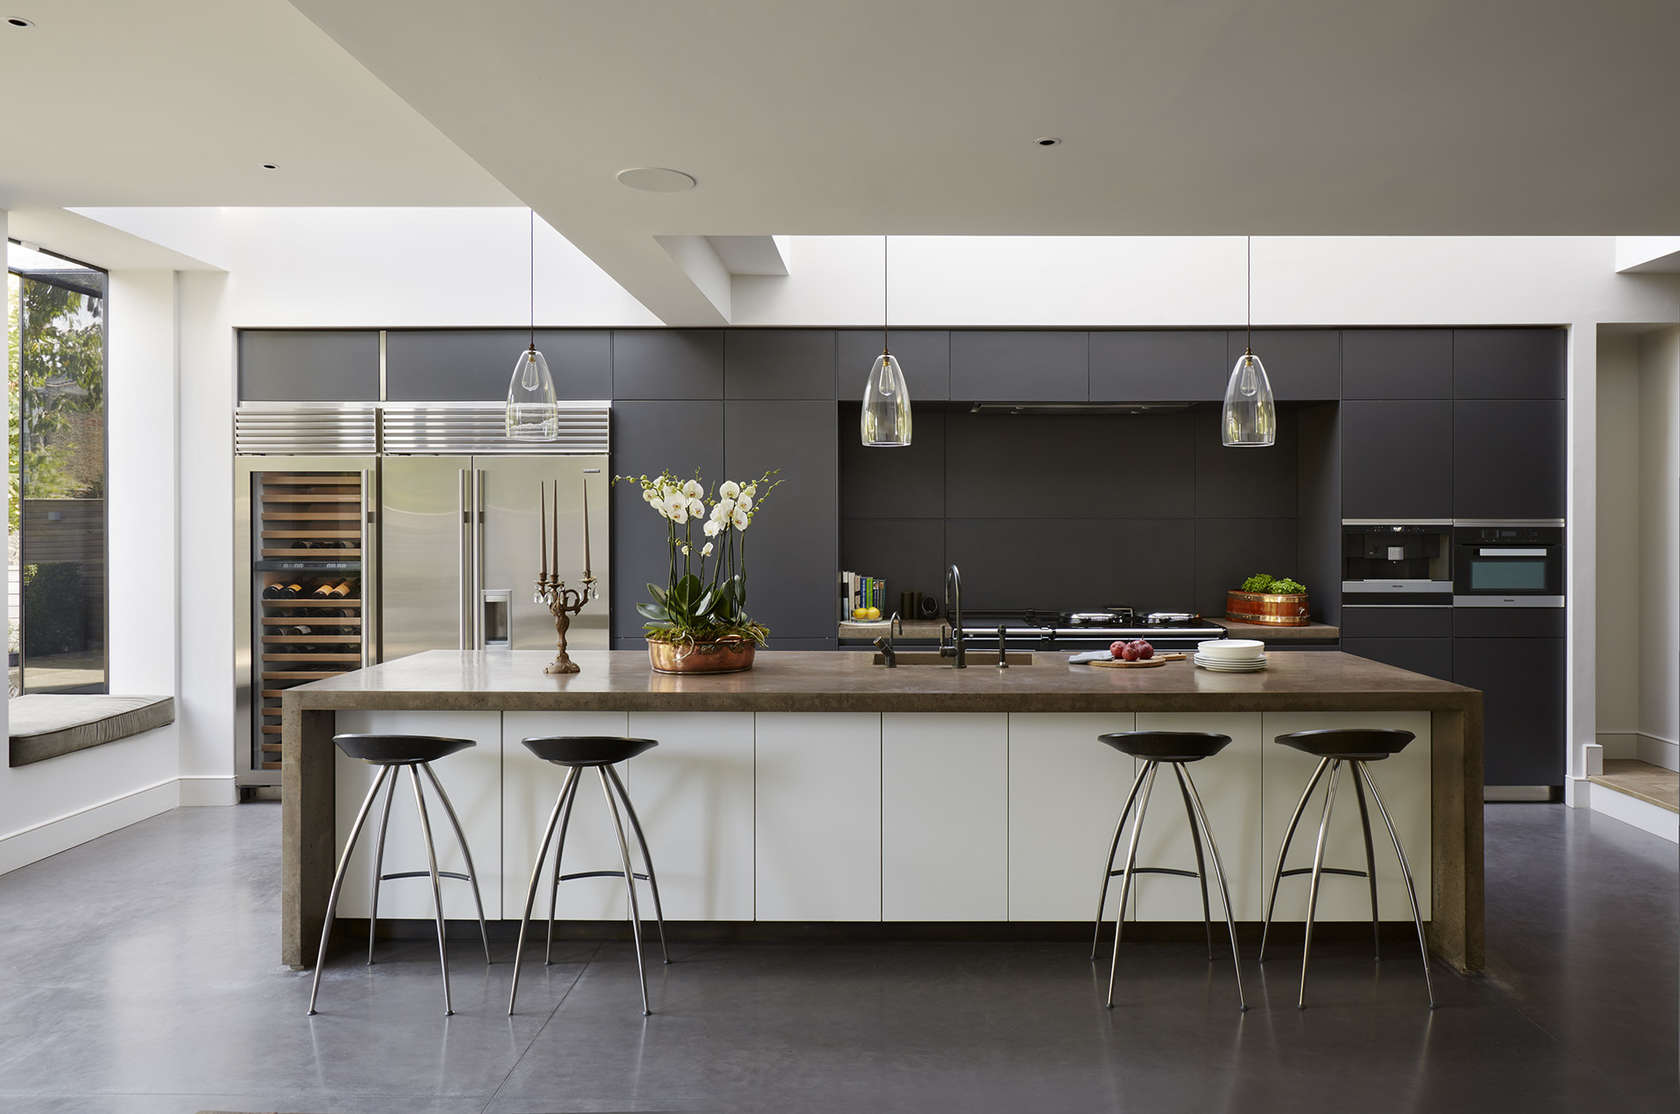 bulthaup by kitchen architecture architizer. Black Bedroom Furniture Sets. Home Design Ideas